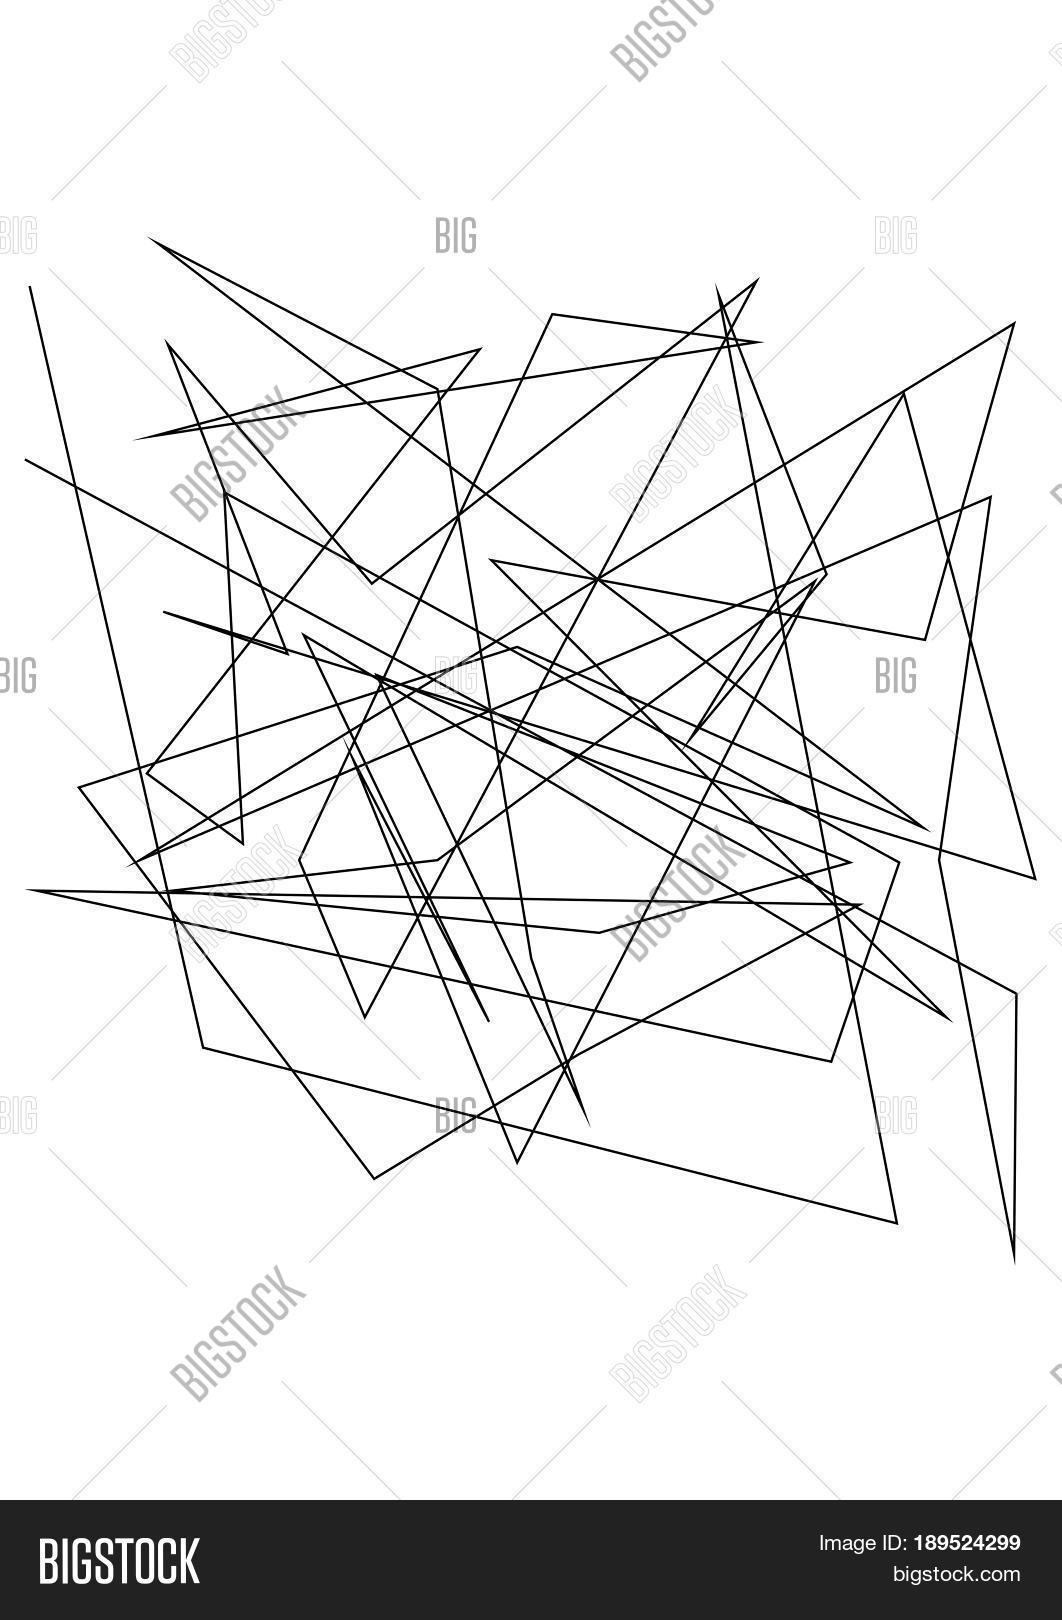 abstraction,abstractionism,angle,angular,art,asymmetric,asymmetrical,asymmetry,background,bw,chaos,chaotic,colorless,contemporary,contrast,diagonal,disarray,distortion,dynamic,dynamism,eccentric,edgy,geometric,geometrical,grayscale,illustration,intersecting,irregular,line,lineal,linear,mess,messy,misc,miscellaneous,monochrome,monocrome,random,rough,straight,stress,tangle,tangled,texture,uncolored,uneven,unusual,vector,weird